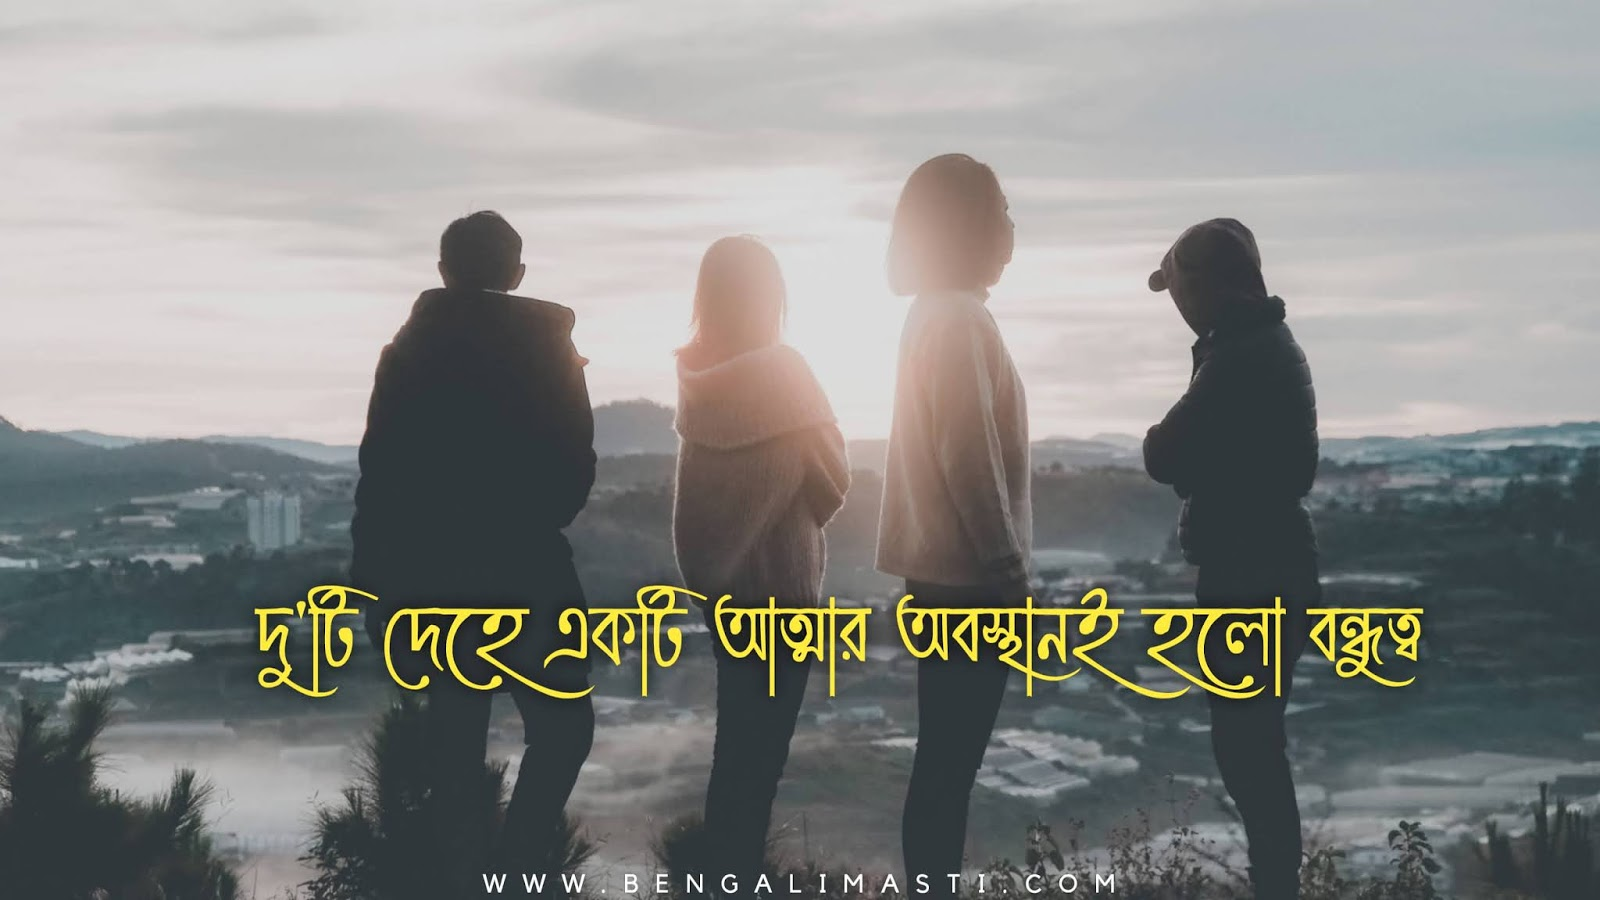 bangla friendship kobita